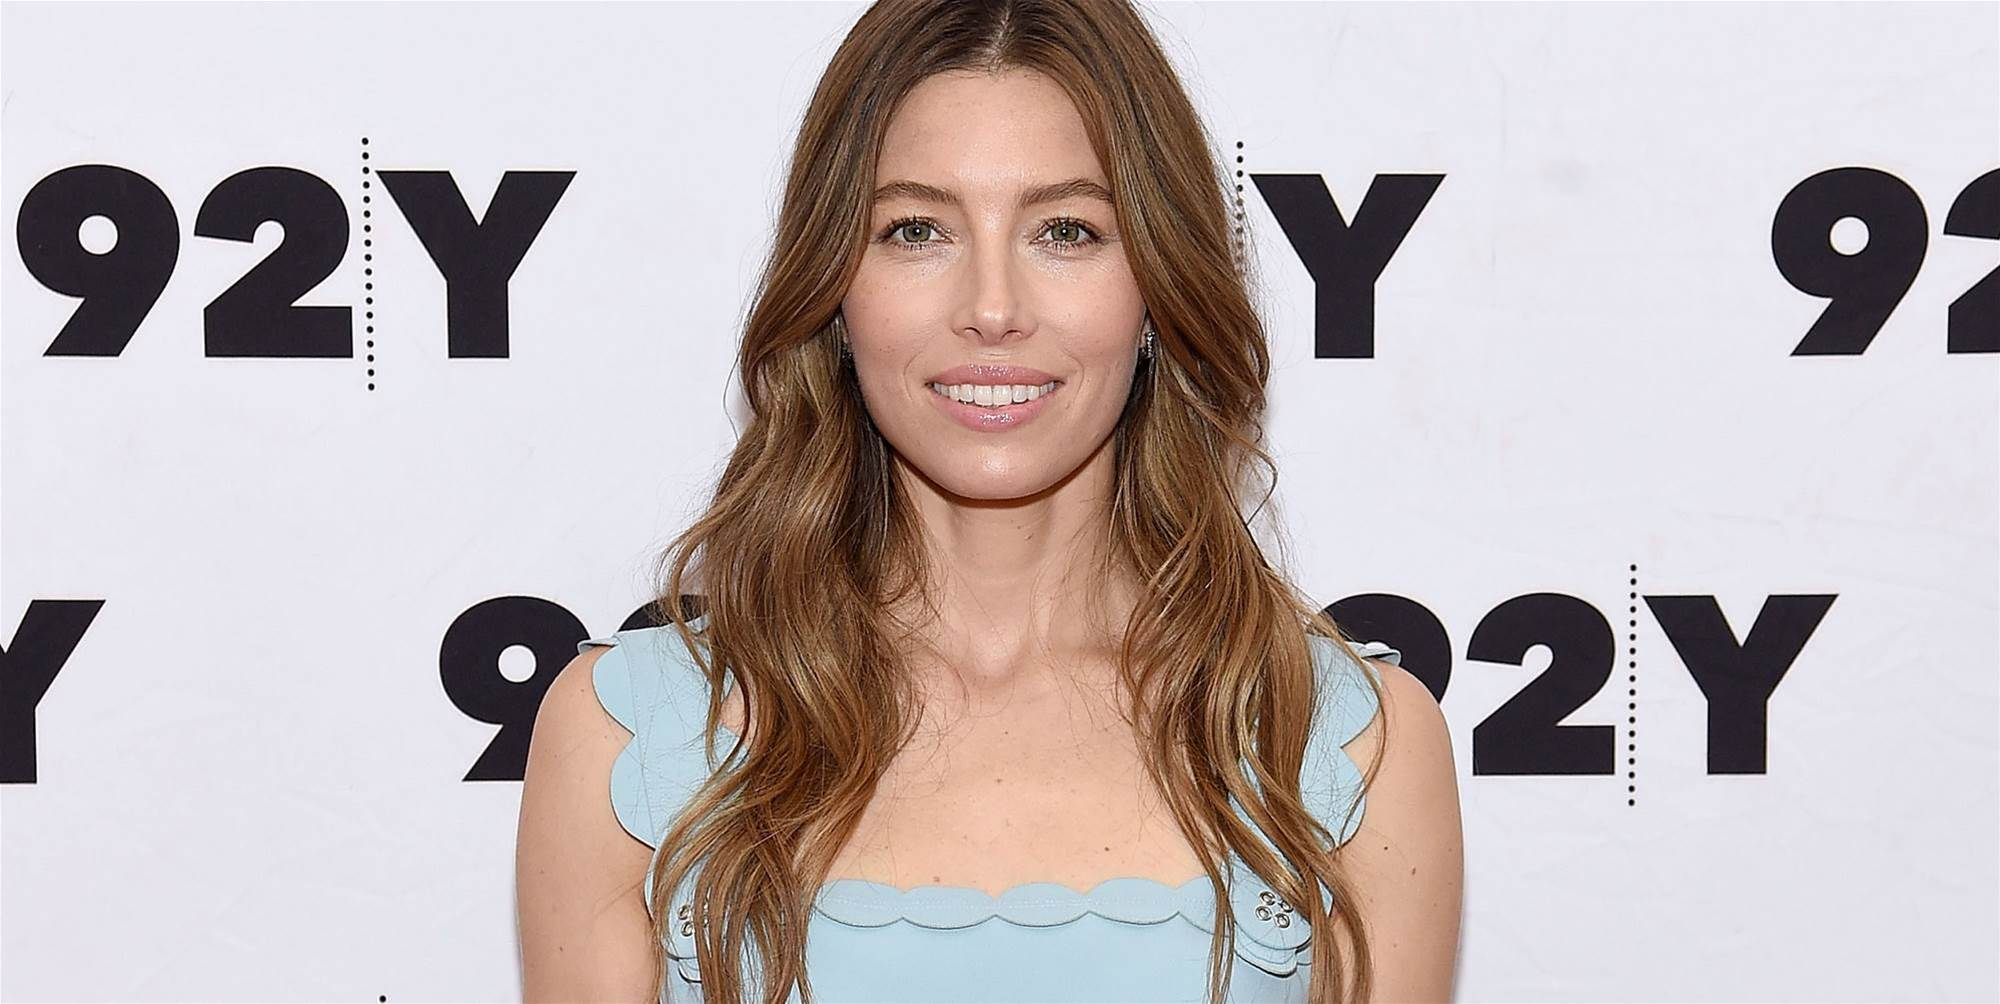 Jessica Biel's Pre-Emmys Workout Shows off Her Crazy-Strong Legs and Butt